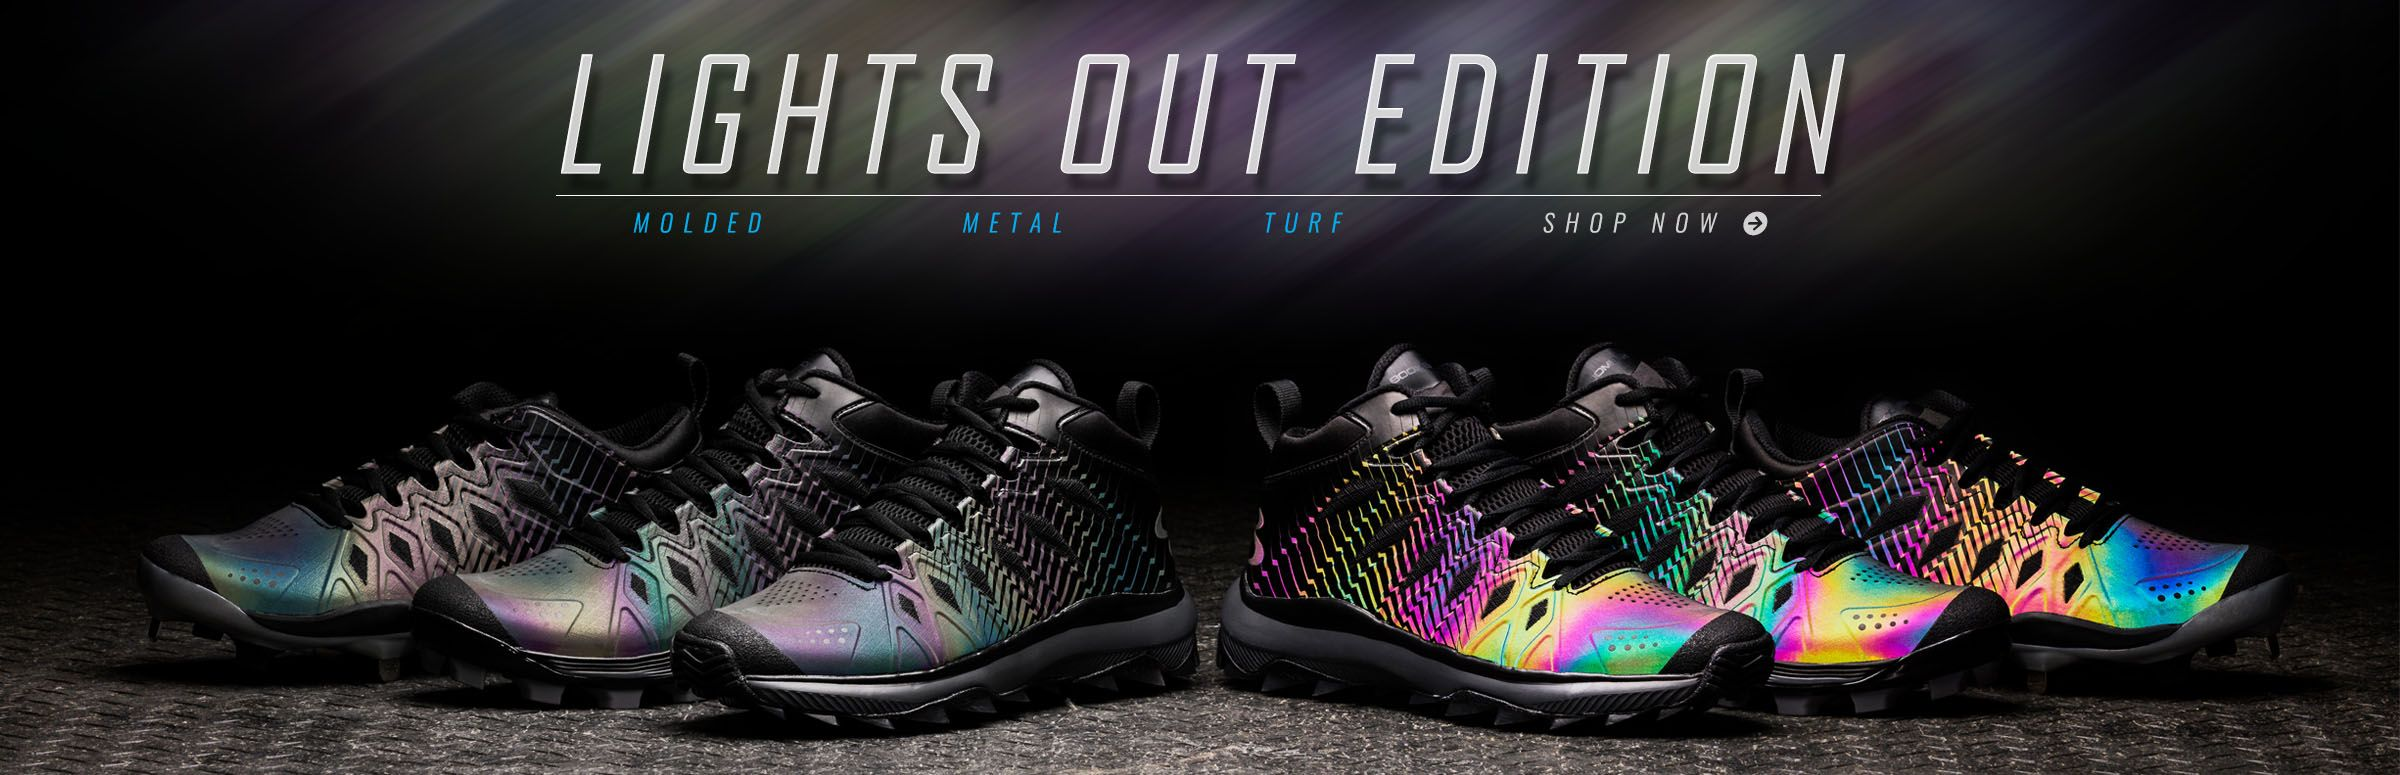 Boombah Lights Out Edition Footwear